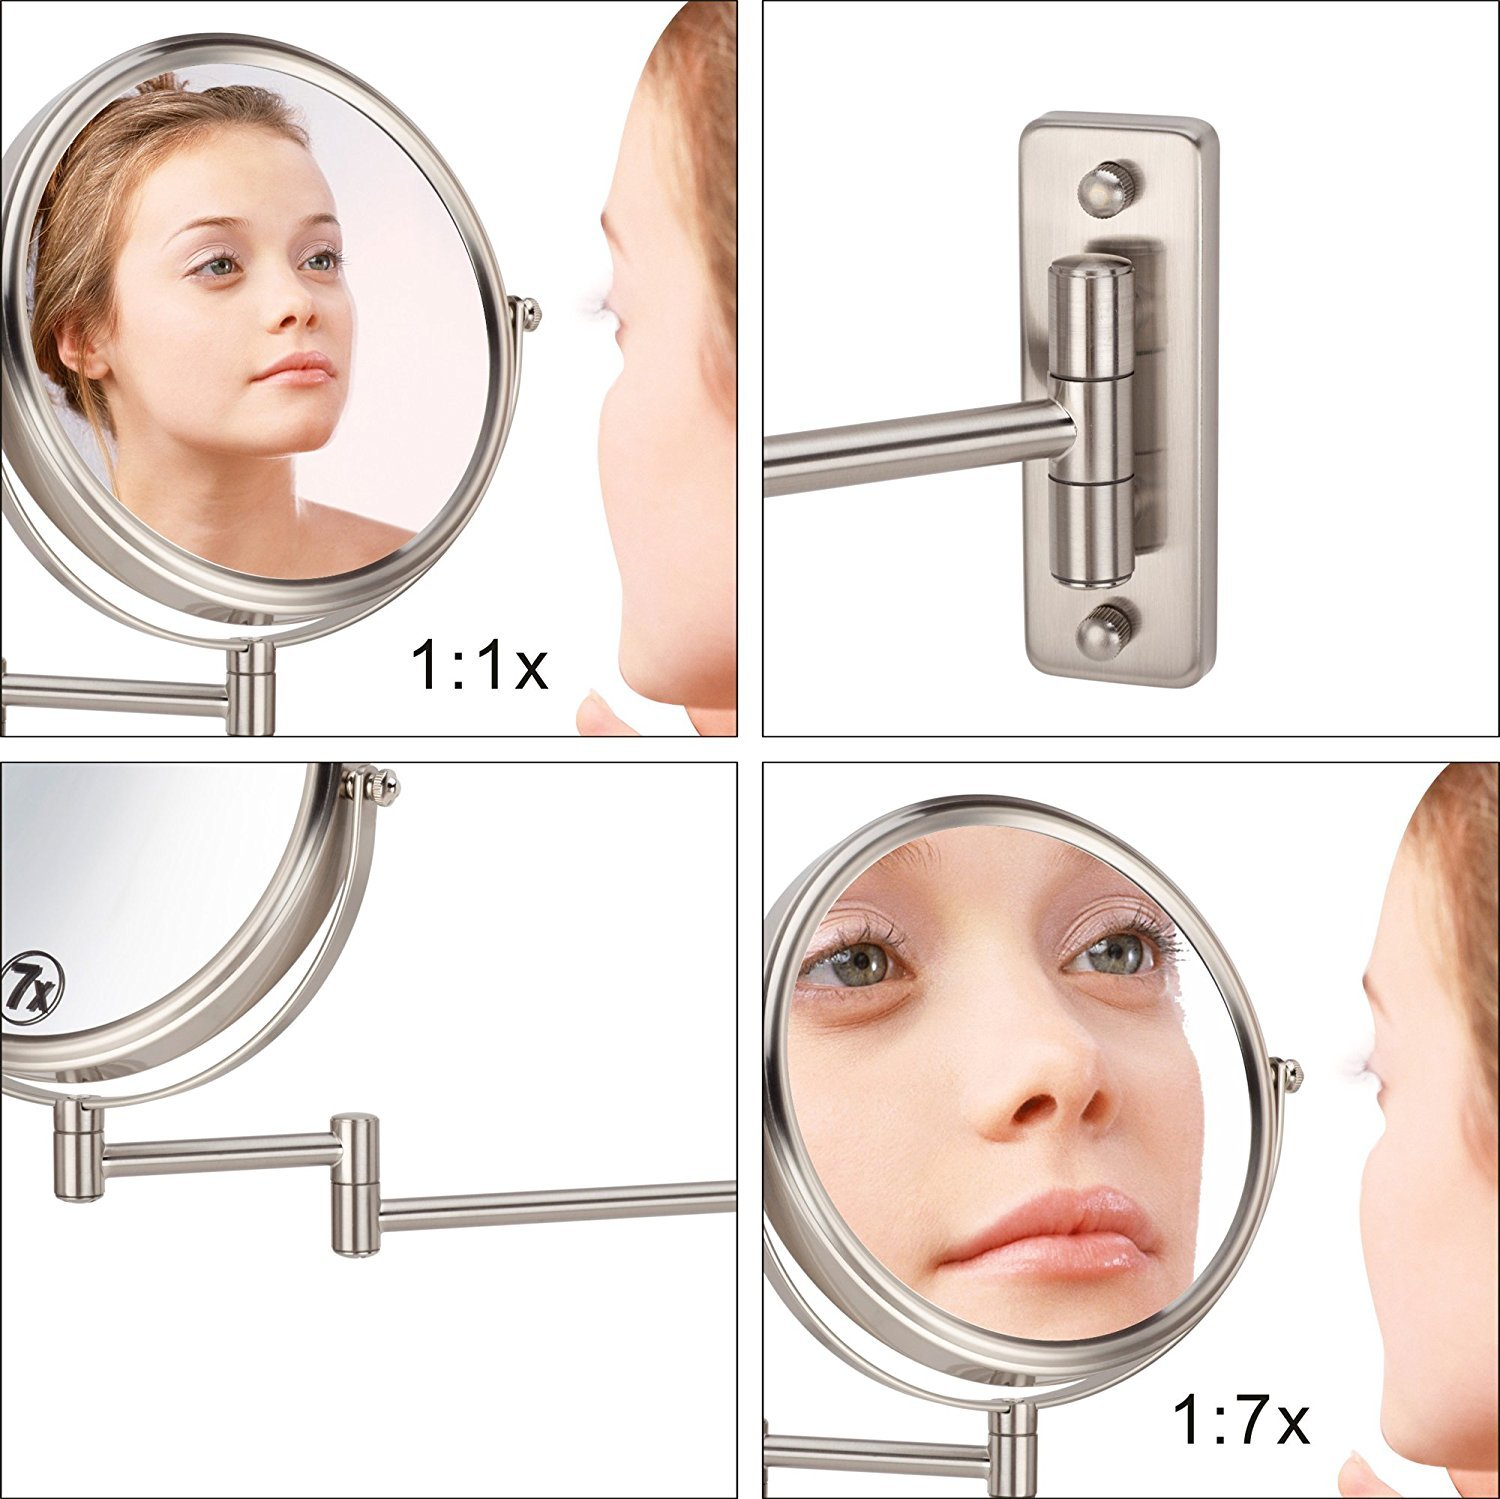 IBeaty Bathroom Mirror 8 inch Wall Mount Makeup Mirror Double-Sided Face Mirror, Swivel Vanity Mirror 1x and 7x Magnification Polished Chrome Finished by IBeaty (Image #6)